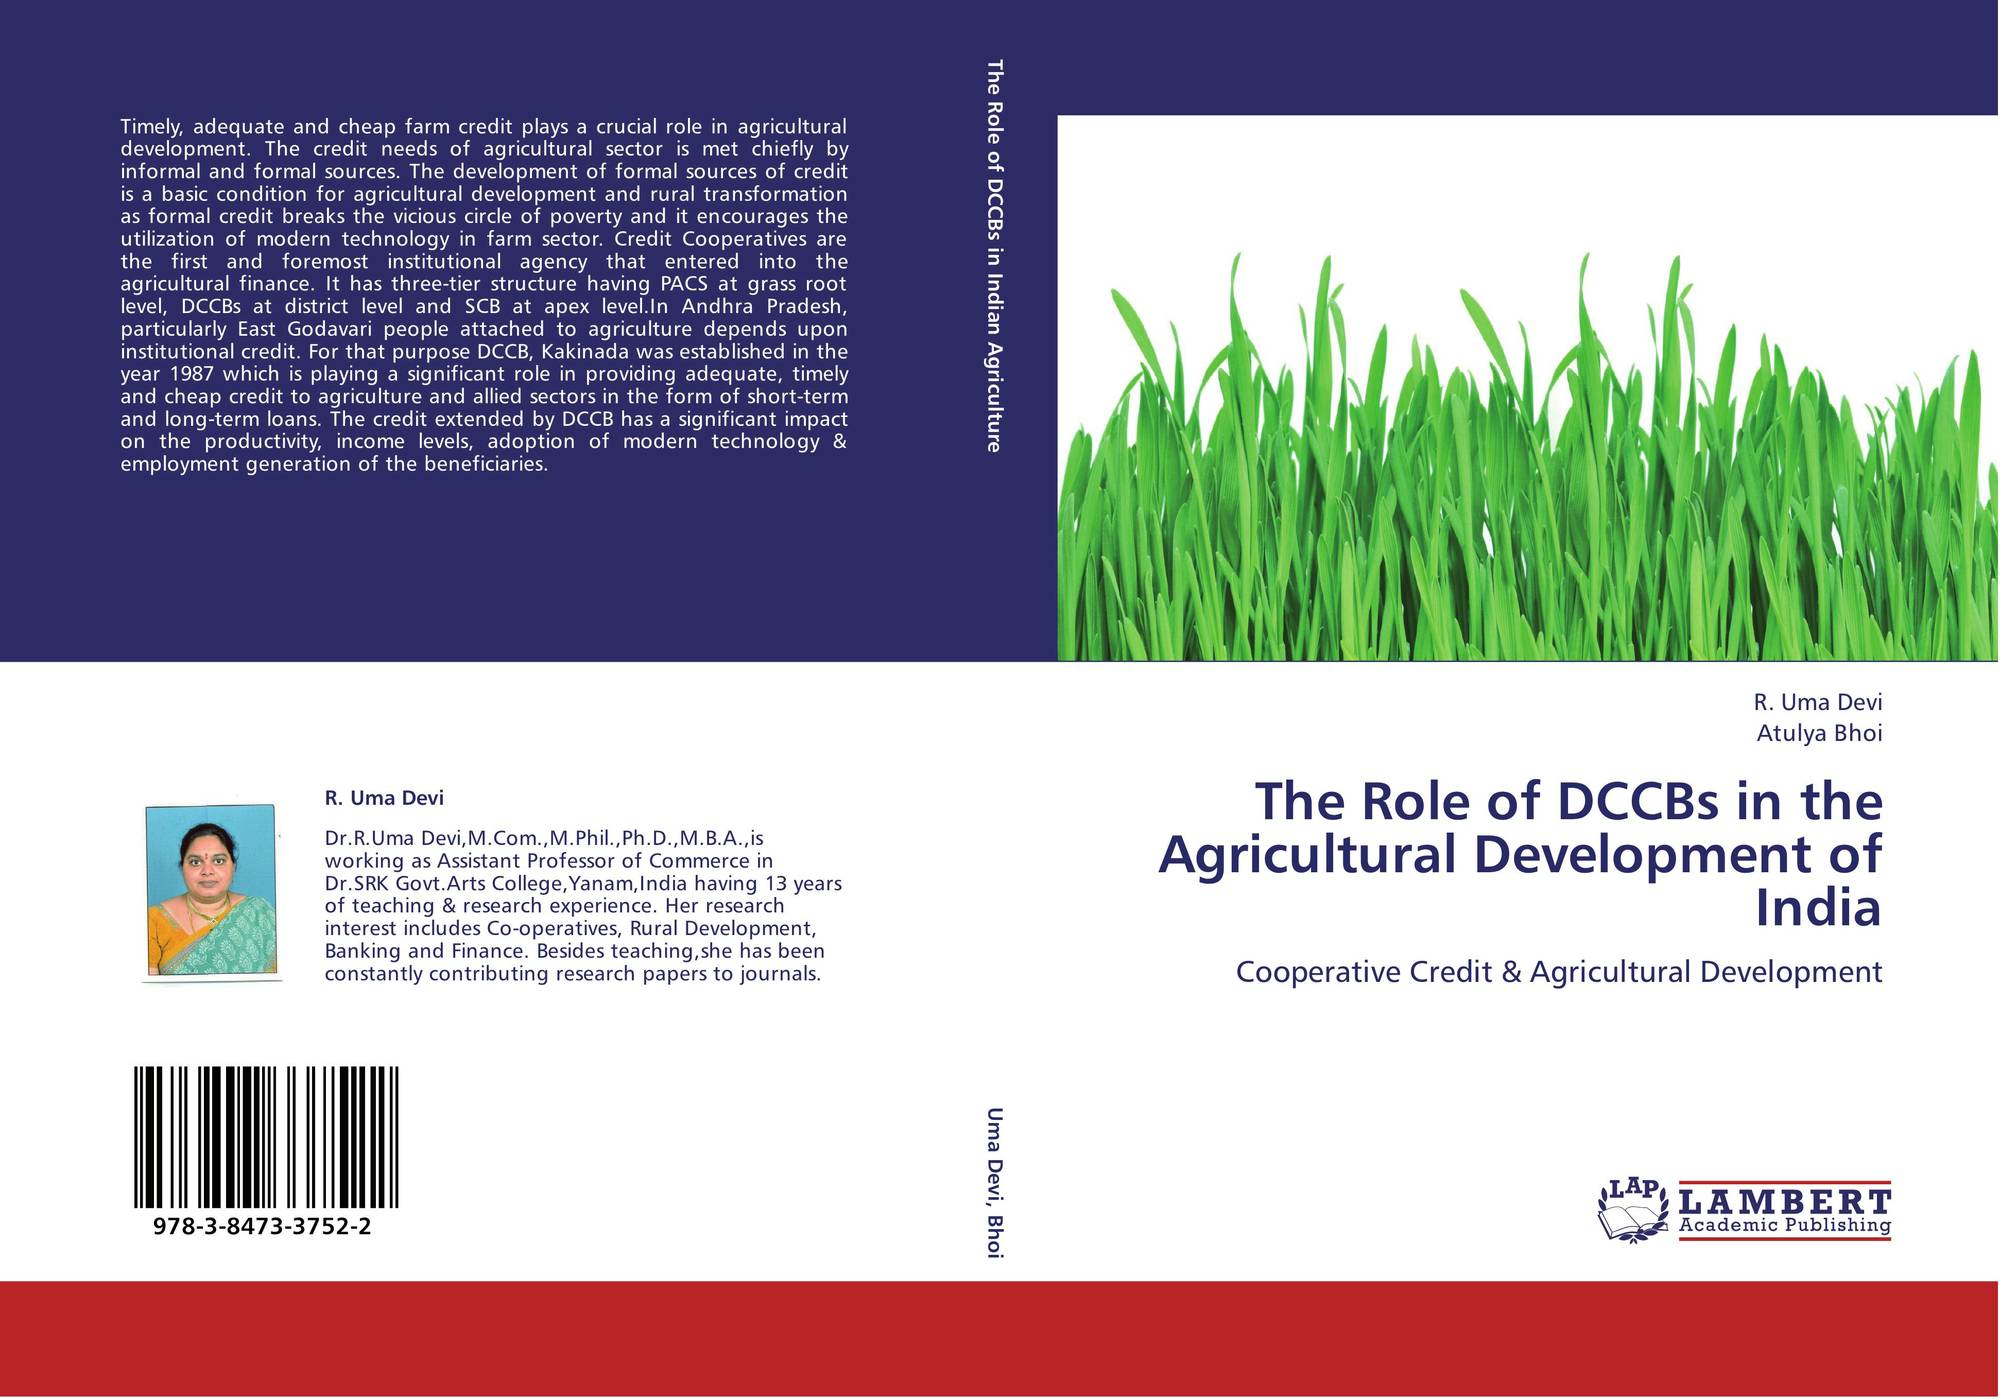 role of agriculture cooperatives in india The cooperative movement in india has its origin in agriculture and allied sectors   the cooperative sector has been playing a distinct and significant role in the.